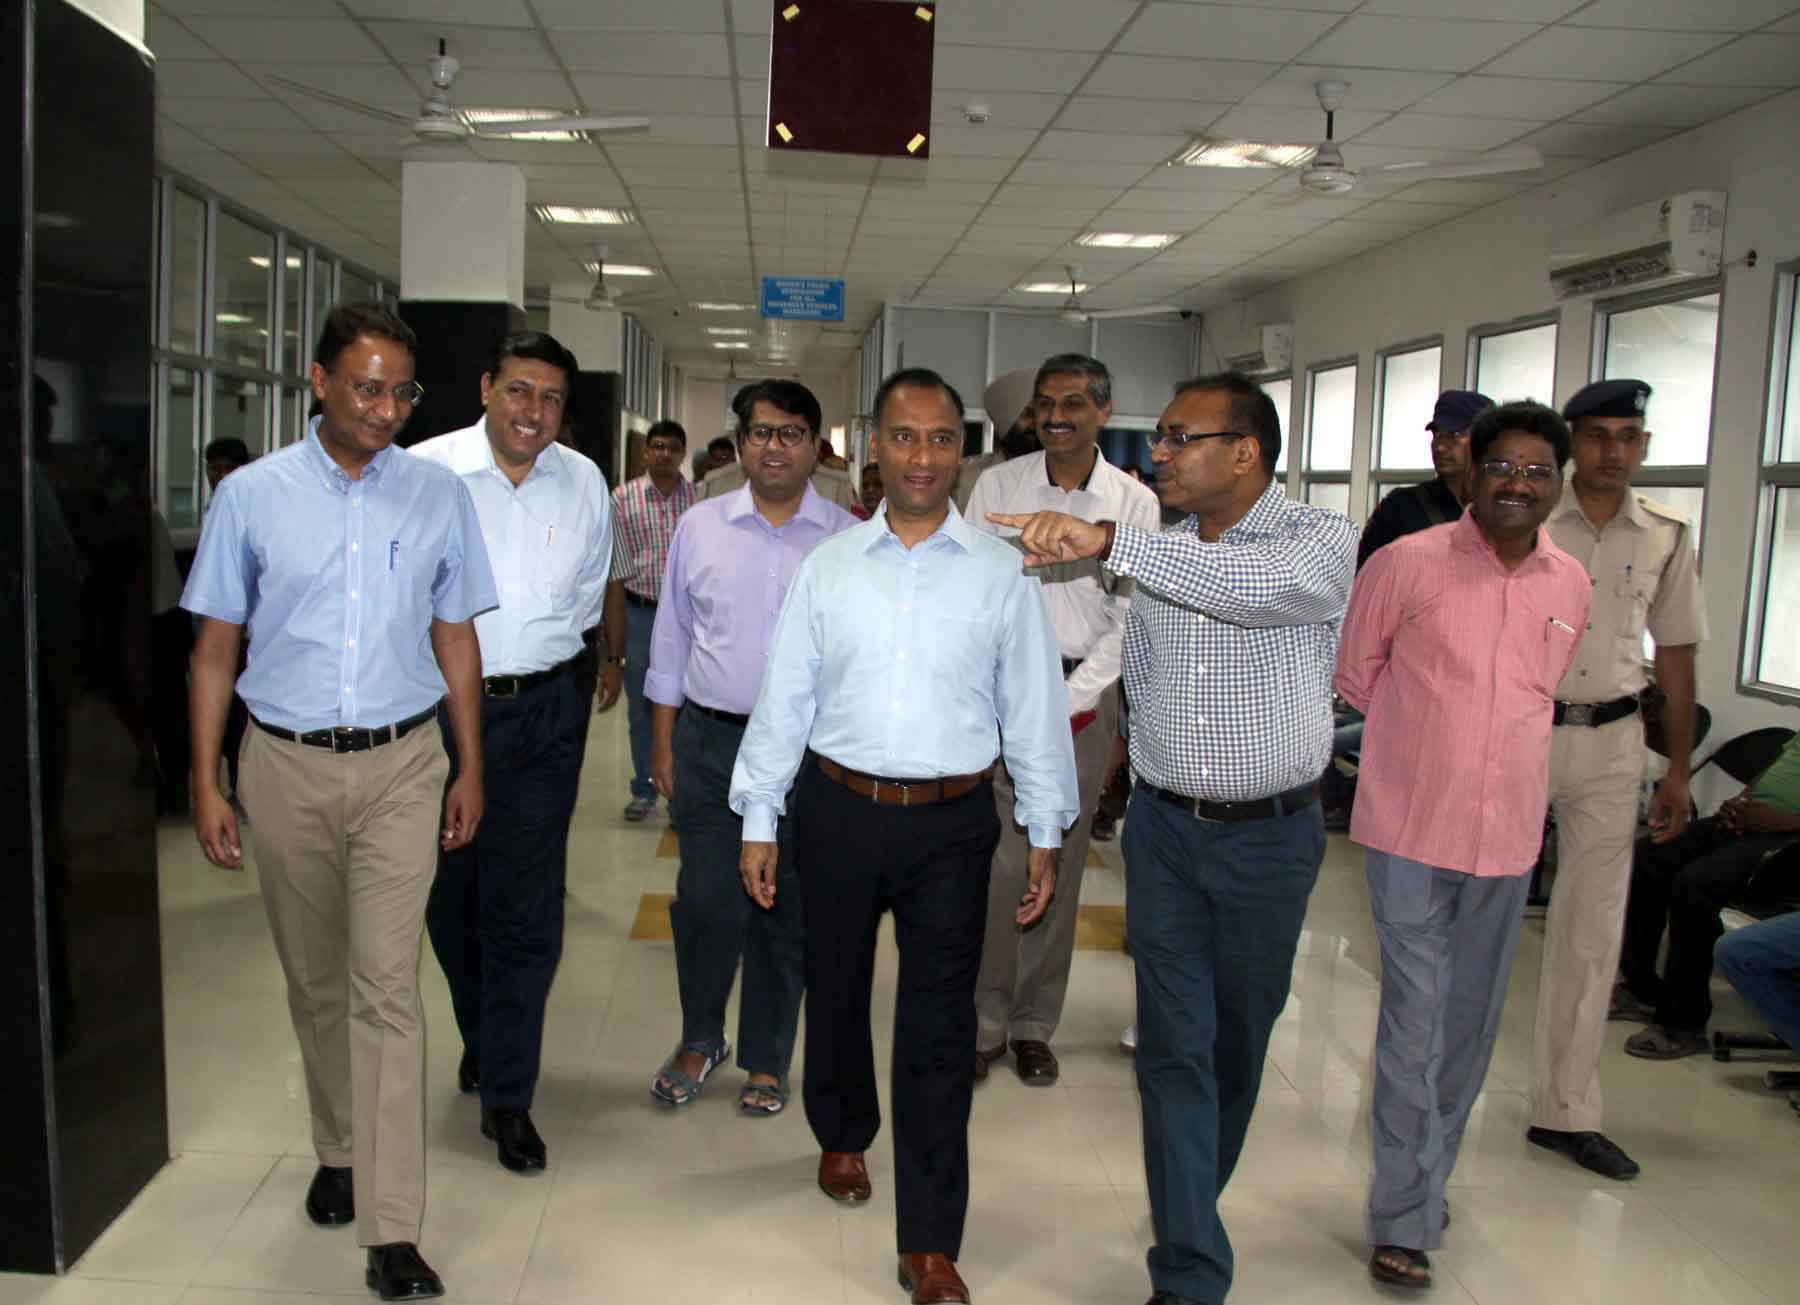 The Adviser to the Administrator, UT, Chandigarh, Mr. Vijay Dev alongwith senior officers visiting at State Transport Authority UT Office, Sector-18, Chandigarh on Friday, May 29, 2015.